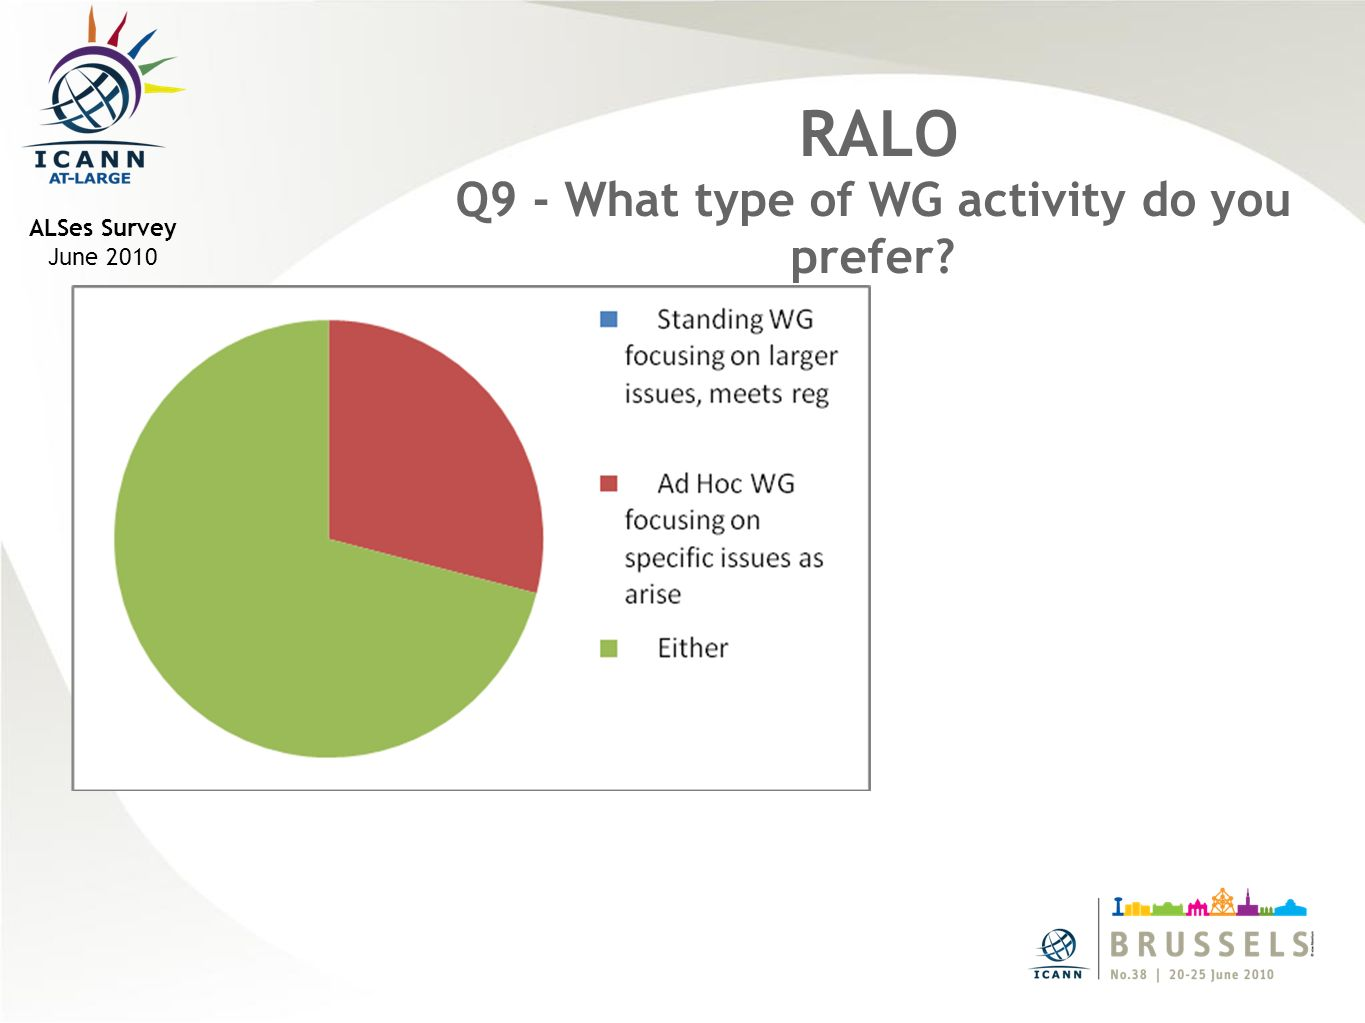 ALSes Survey June 2010 RALO Q9 - What type of WG activity do you prefer?